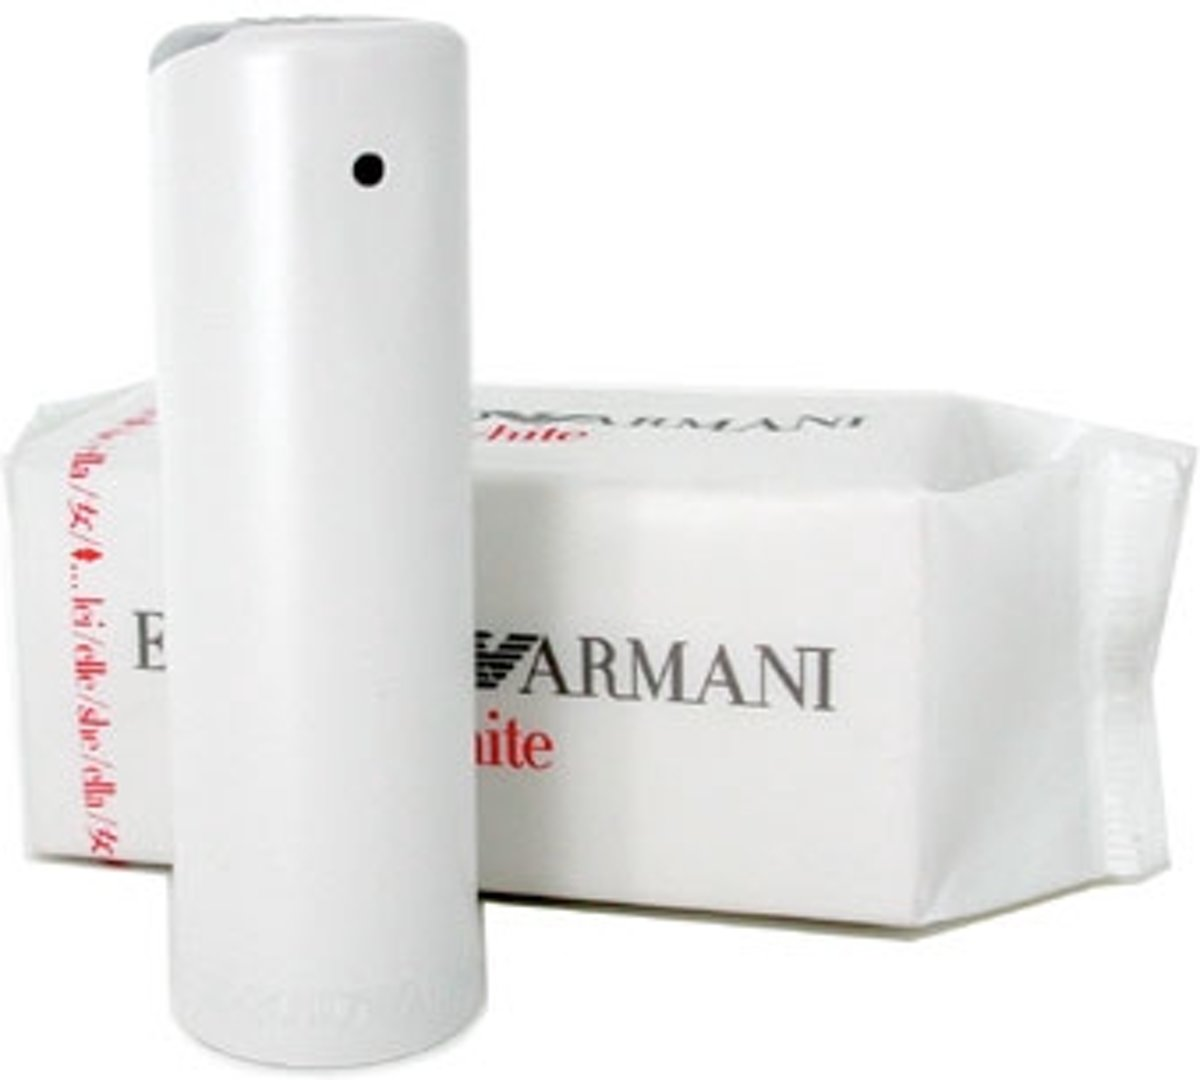 Armani - She White eau de toilette 50ml